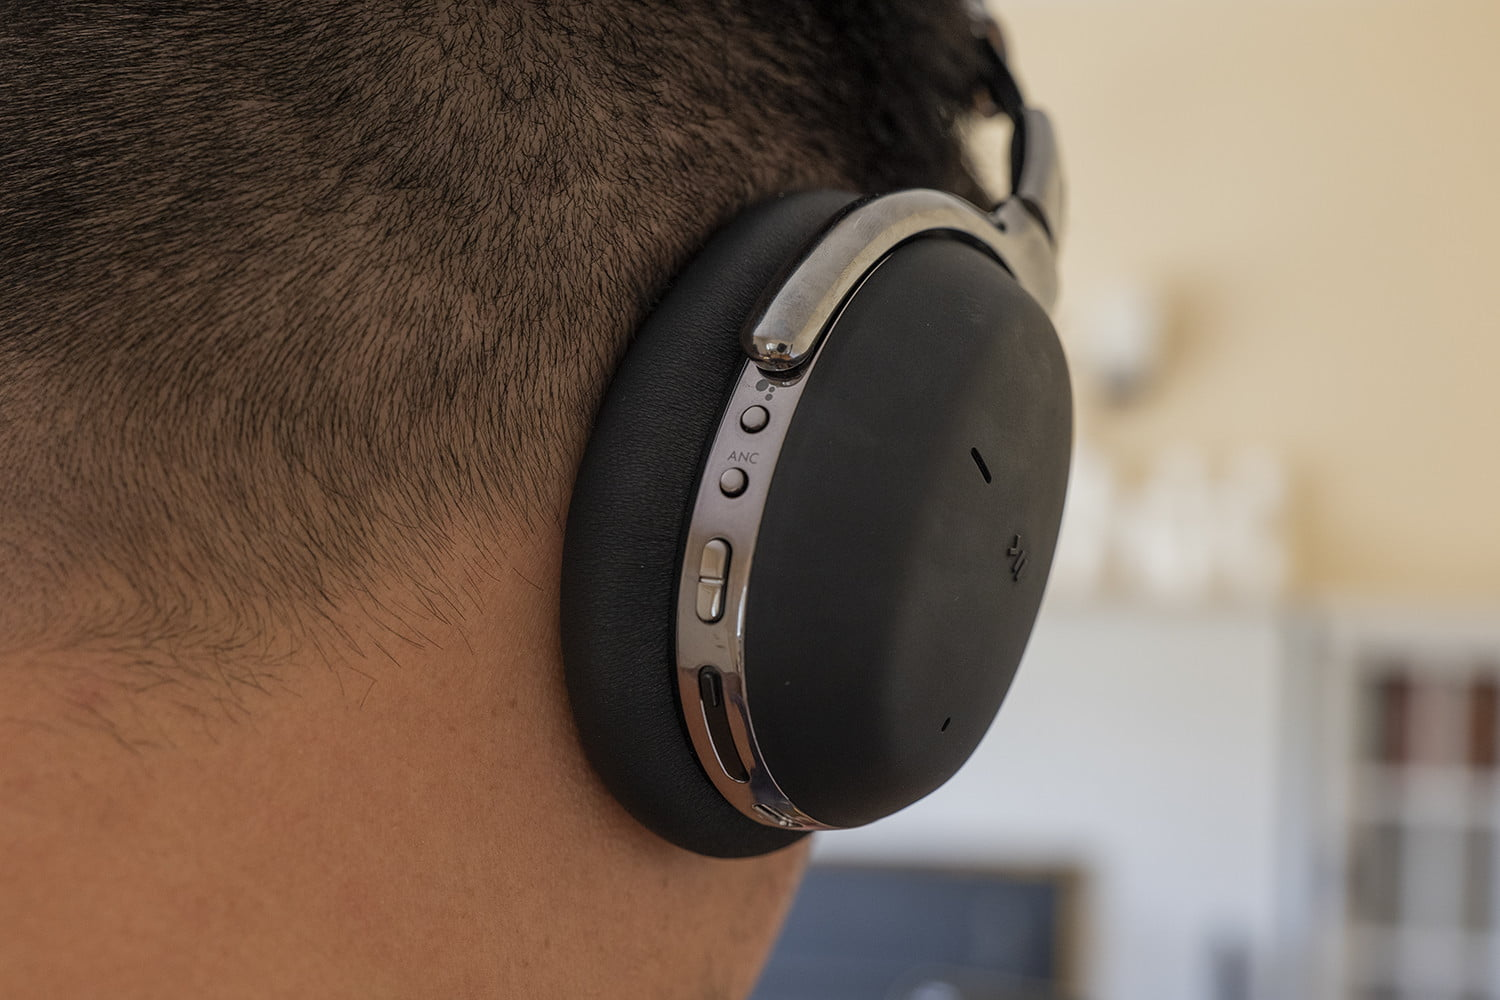 montblanc mb01 headphones review 9